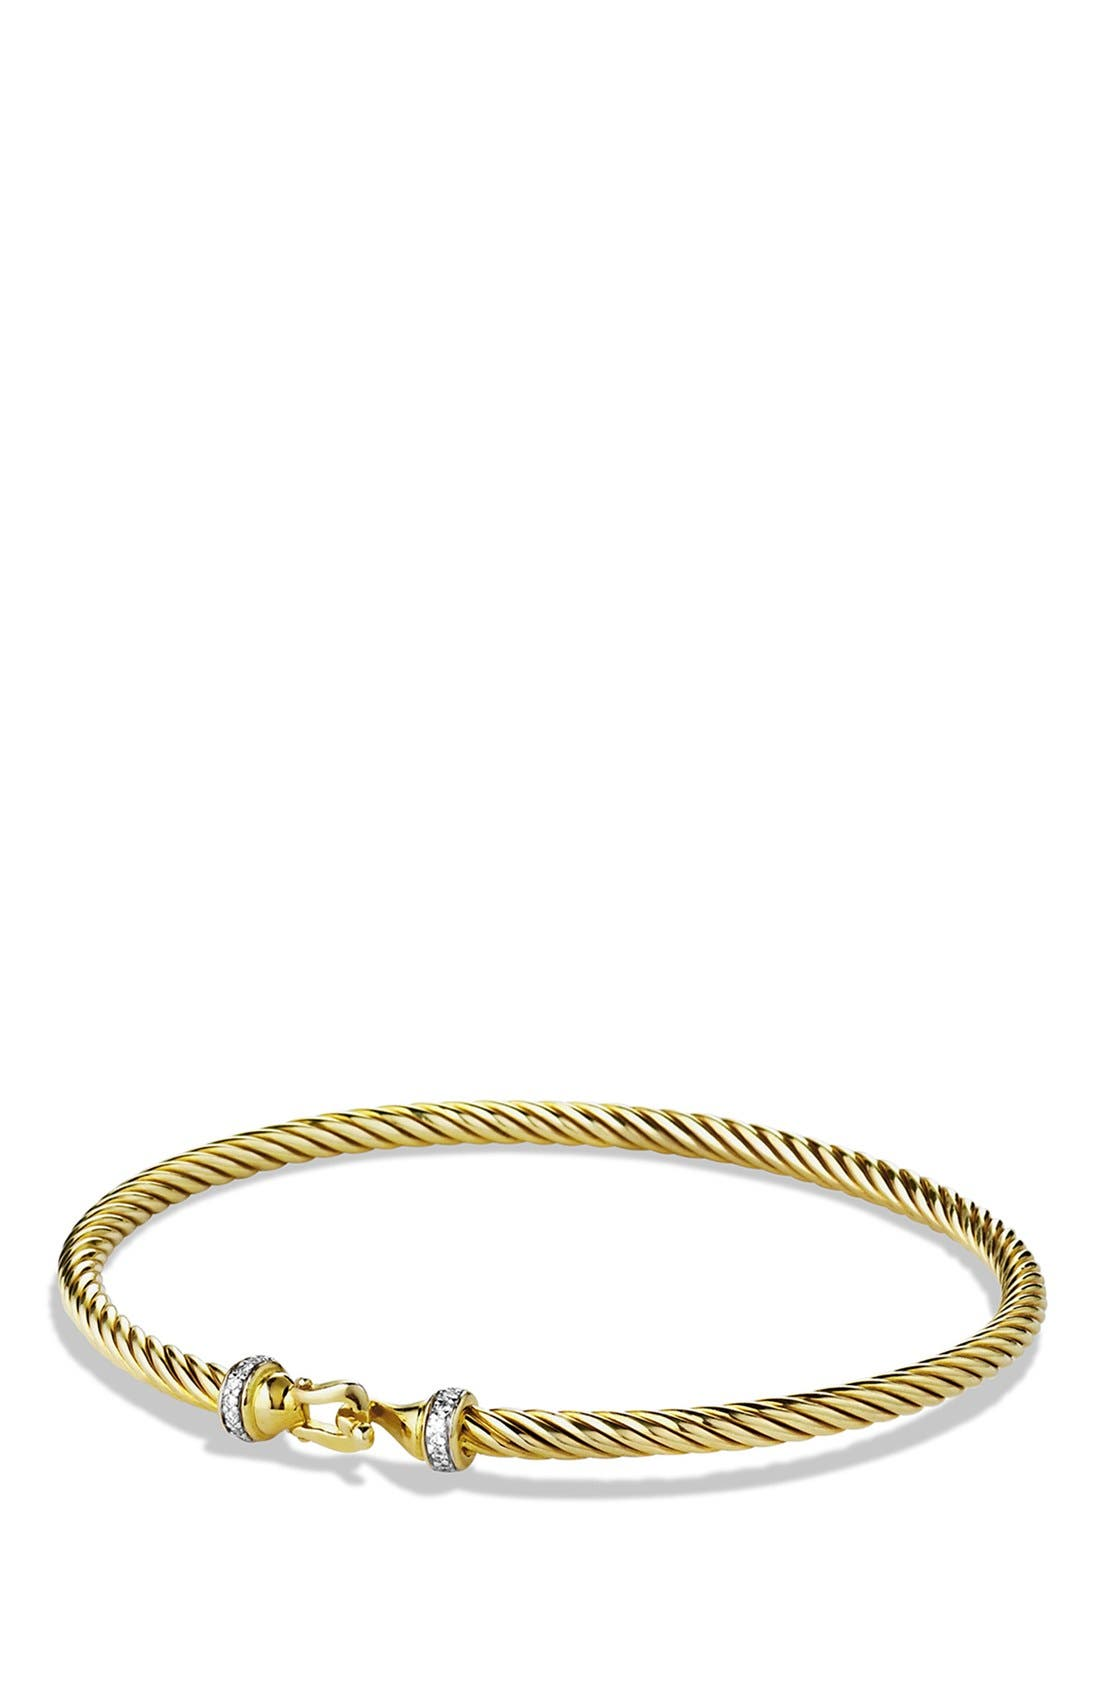 DAVID YURMAN 'Cable Buckle' Bracelet with Diamonds in